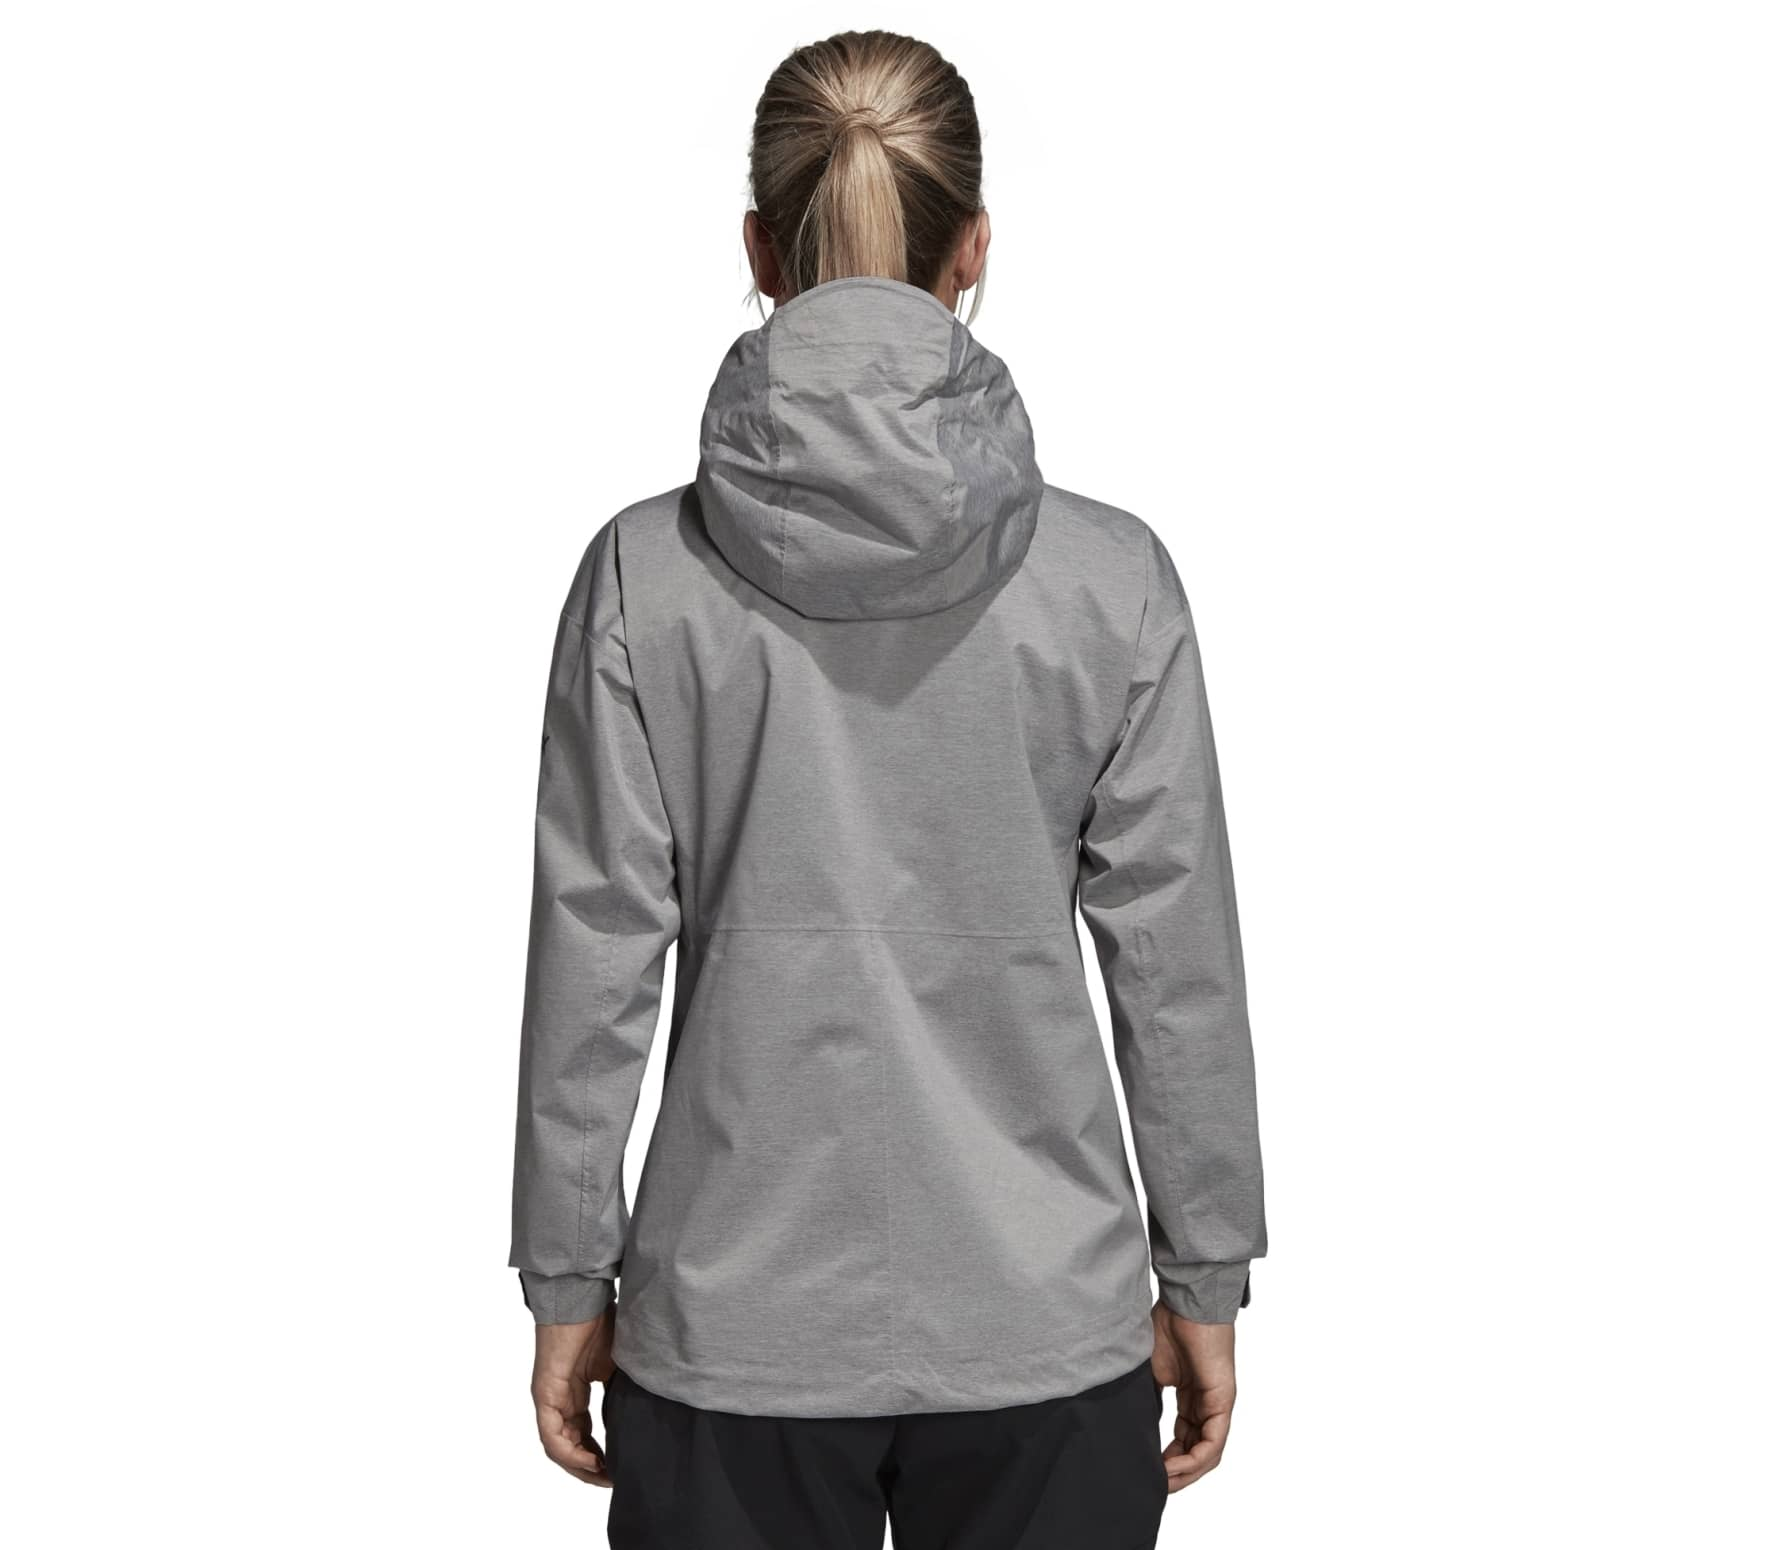 57becb1d254a adidas Performance - Swift Pro women s 2.5 layer jacket (grey) - buy ...